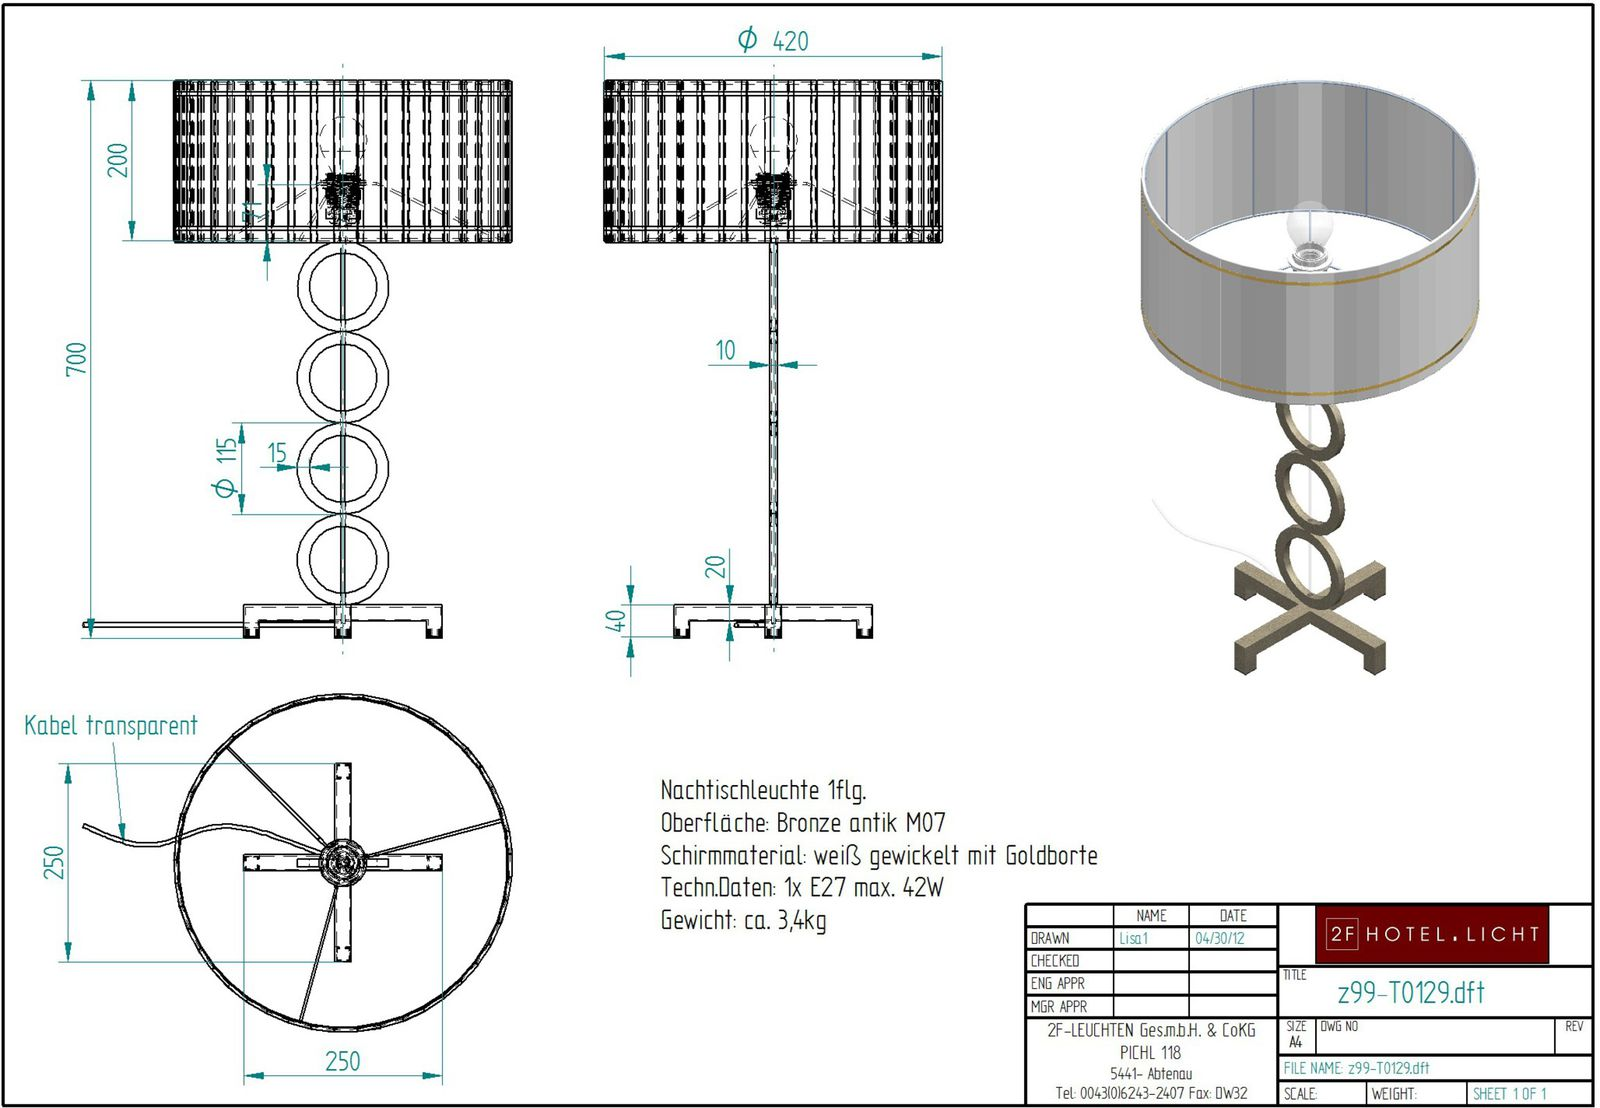 nighttablelamp, height=702mm, wide=420mm, shade: height=200mm, diameter=420mm, surface: bronce antik, techn. details: 1xE27, 42W